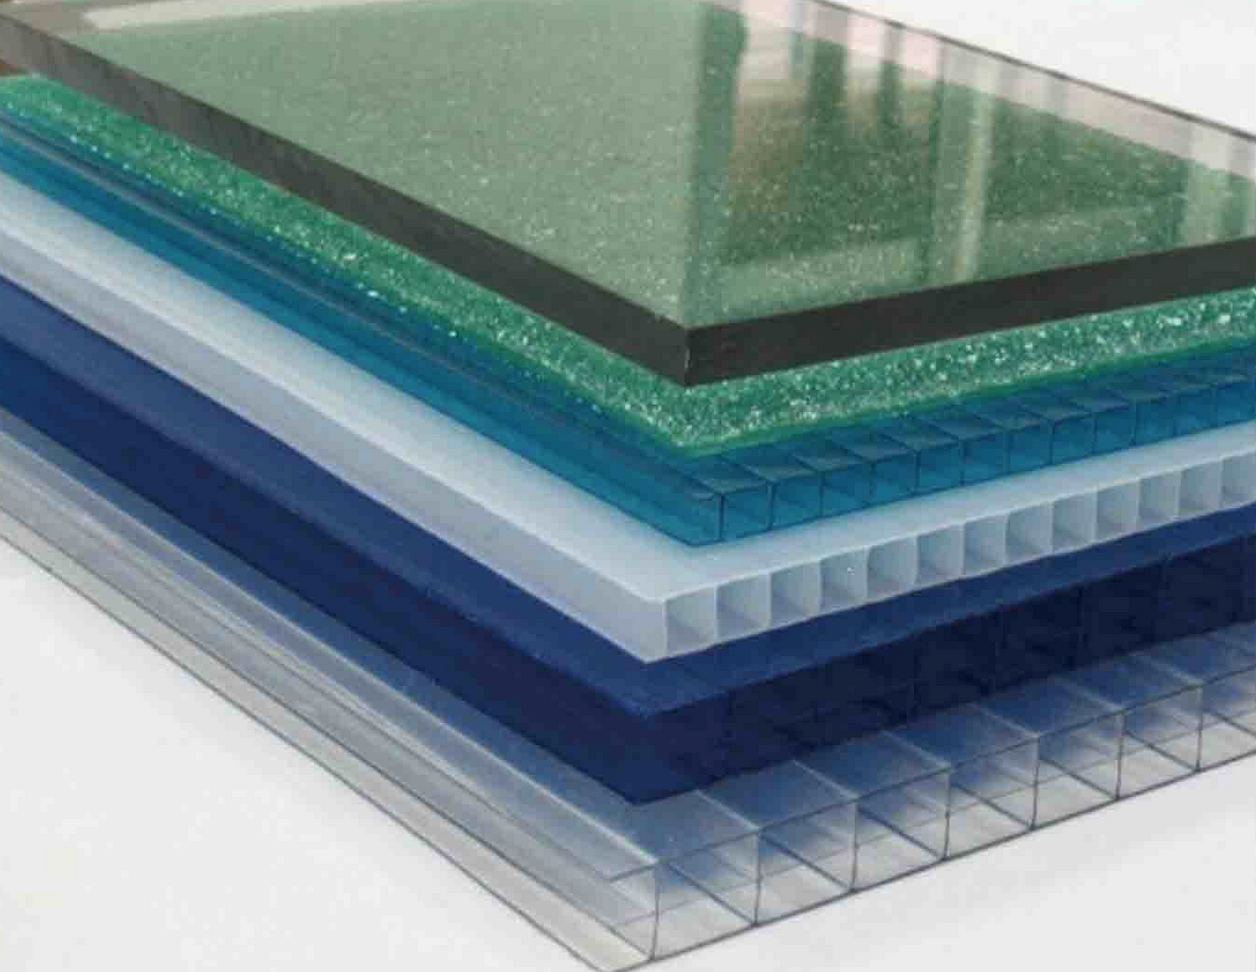 Transparent and Colored Polycarbonate Sheet Stock | Materials ...